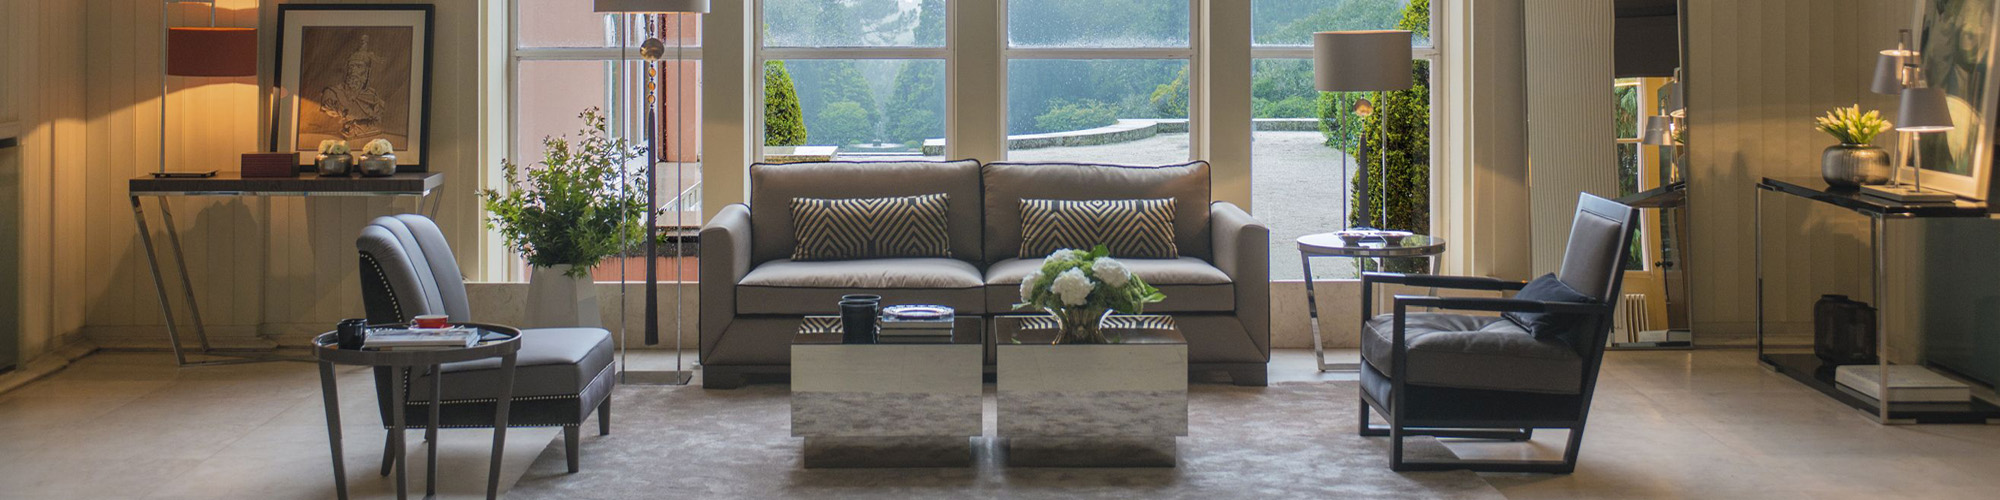 Frato Interiors Furniture - Buy Online at FCI London